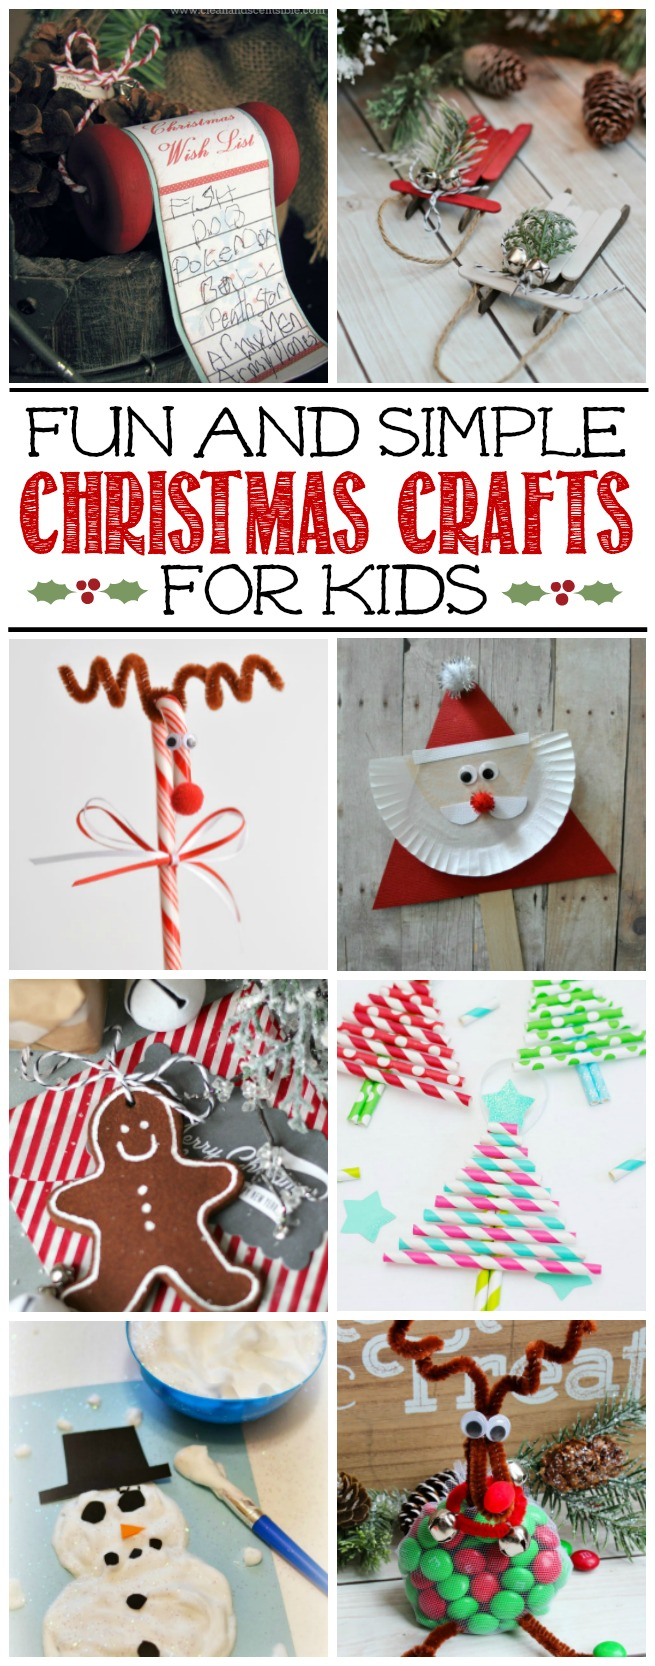 Cute collection of fun Christmas crafts for kids. Take some down time and have a fun afternoon with your kiddos!